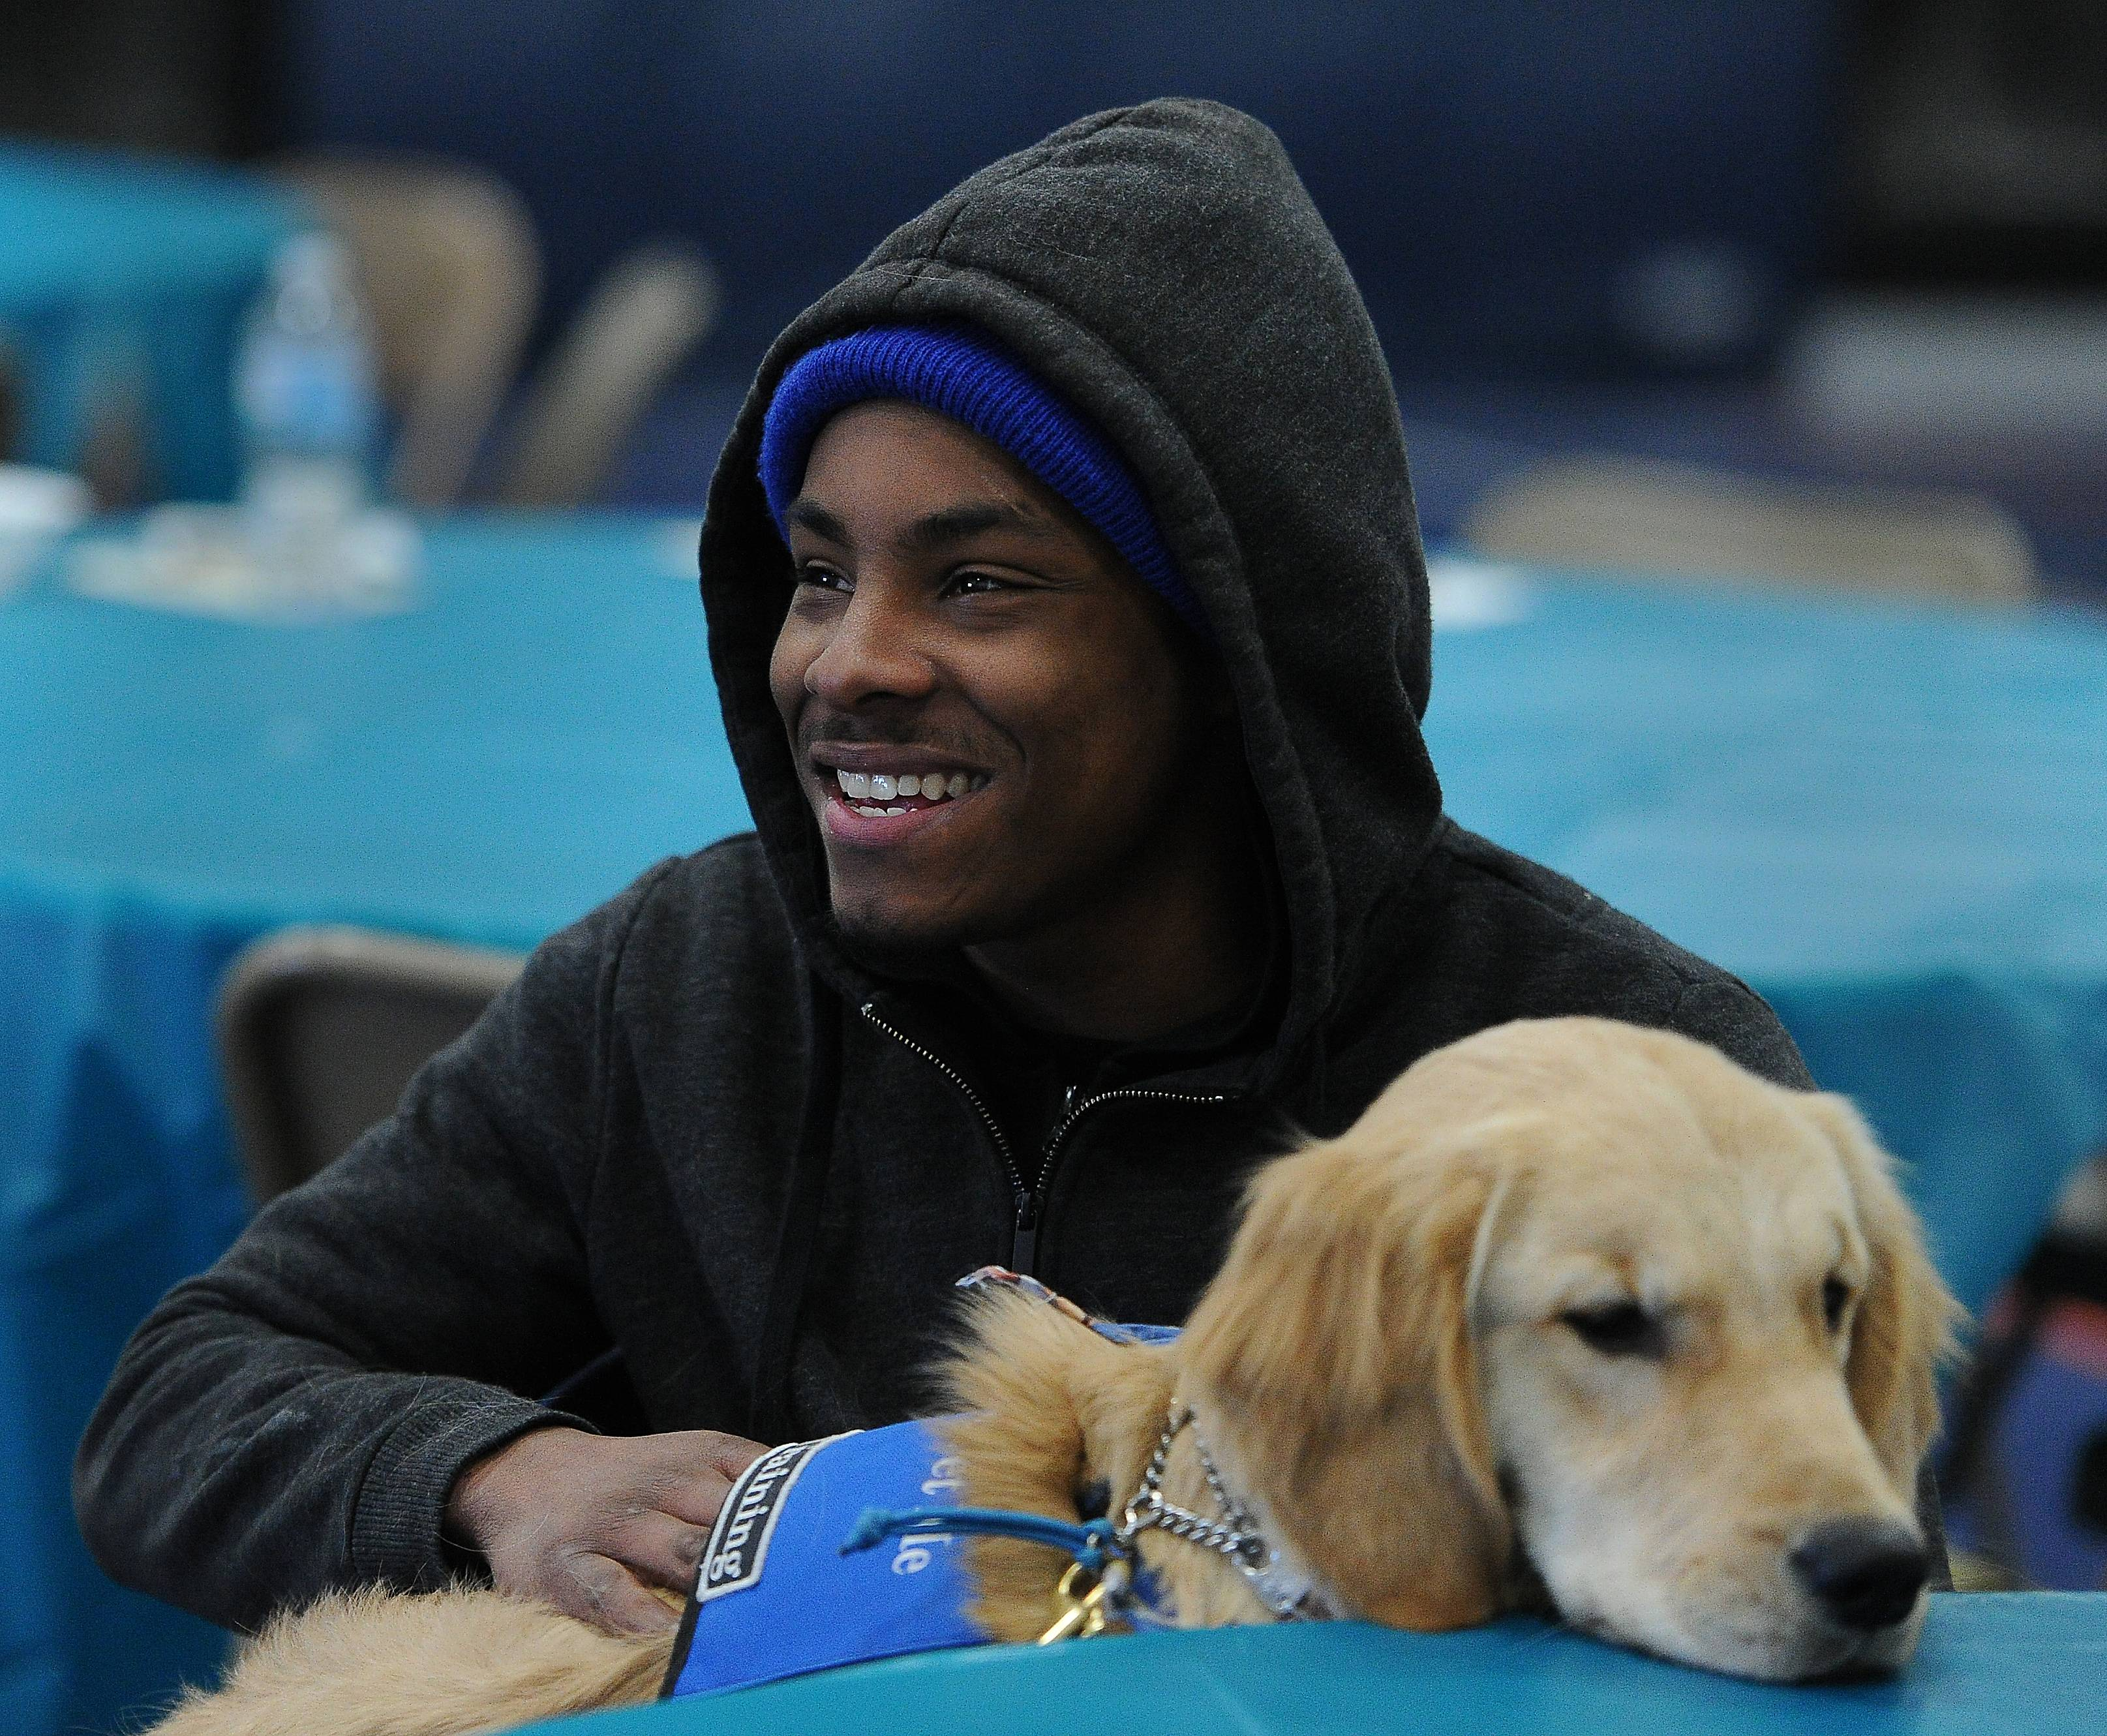 Darius Robinson, 19, of Carol Stream hangs out with Hope the Golden Retriever comfort dog at Our Savior Lutheran Church in Carol Stream. A Christmas party for about twenty homeless people was provided in which gift cards for food and gas along with a big meal treated both men and women.